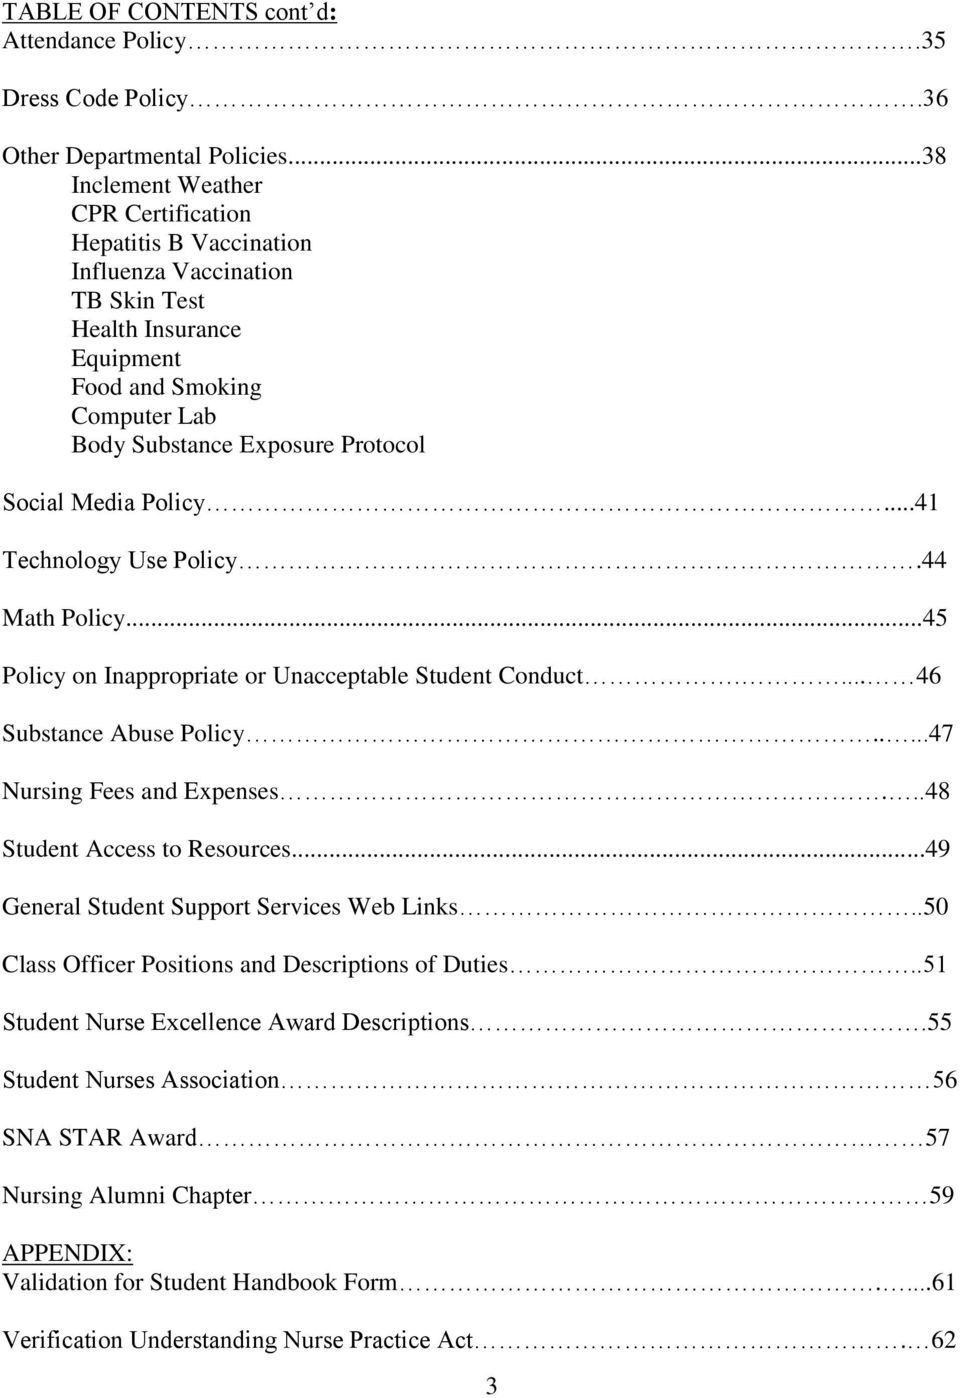 Media Policy...41 Technology Use Policy.44 Math Policy...45 Policy on Inappropriate or Unacceptable Student Conduct.... 46 Substance Abuse Policy.....47 Nursing Fees and Expenses.